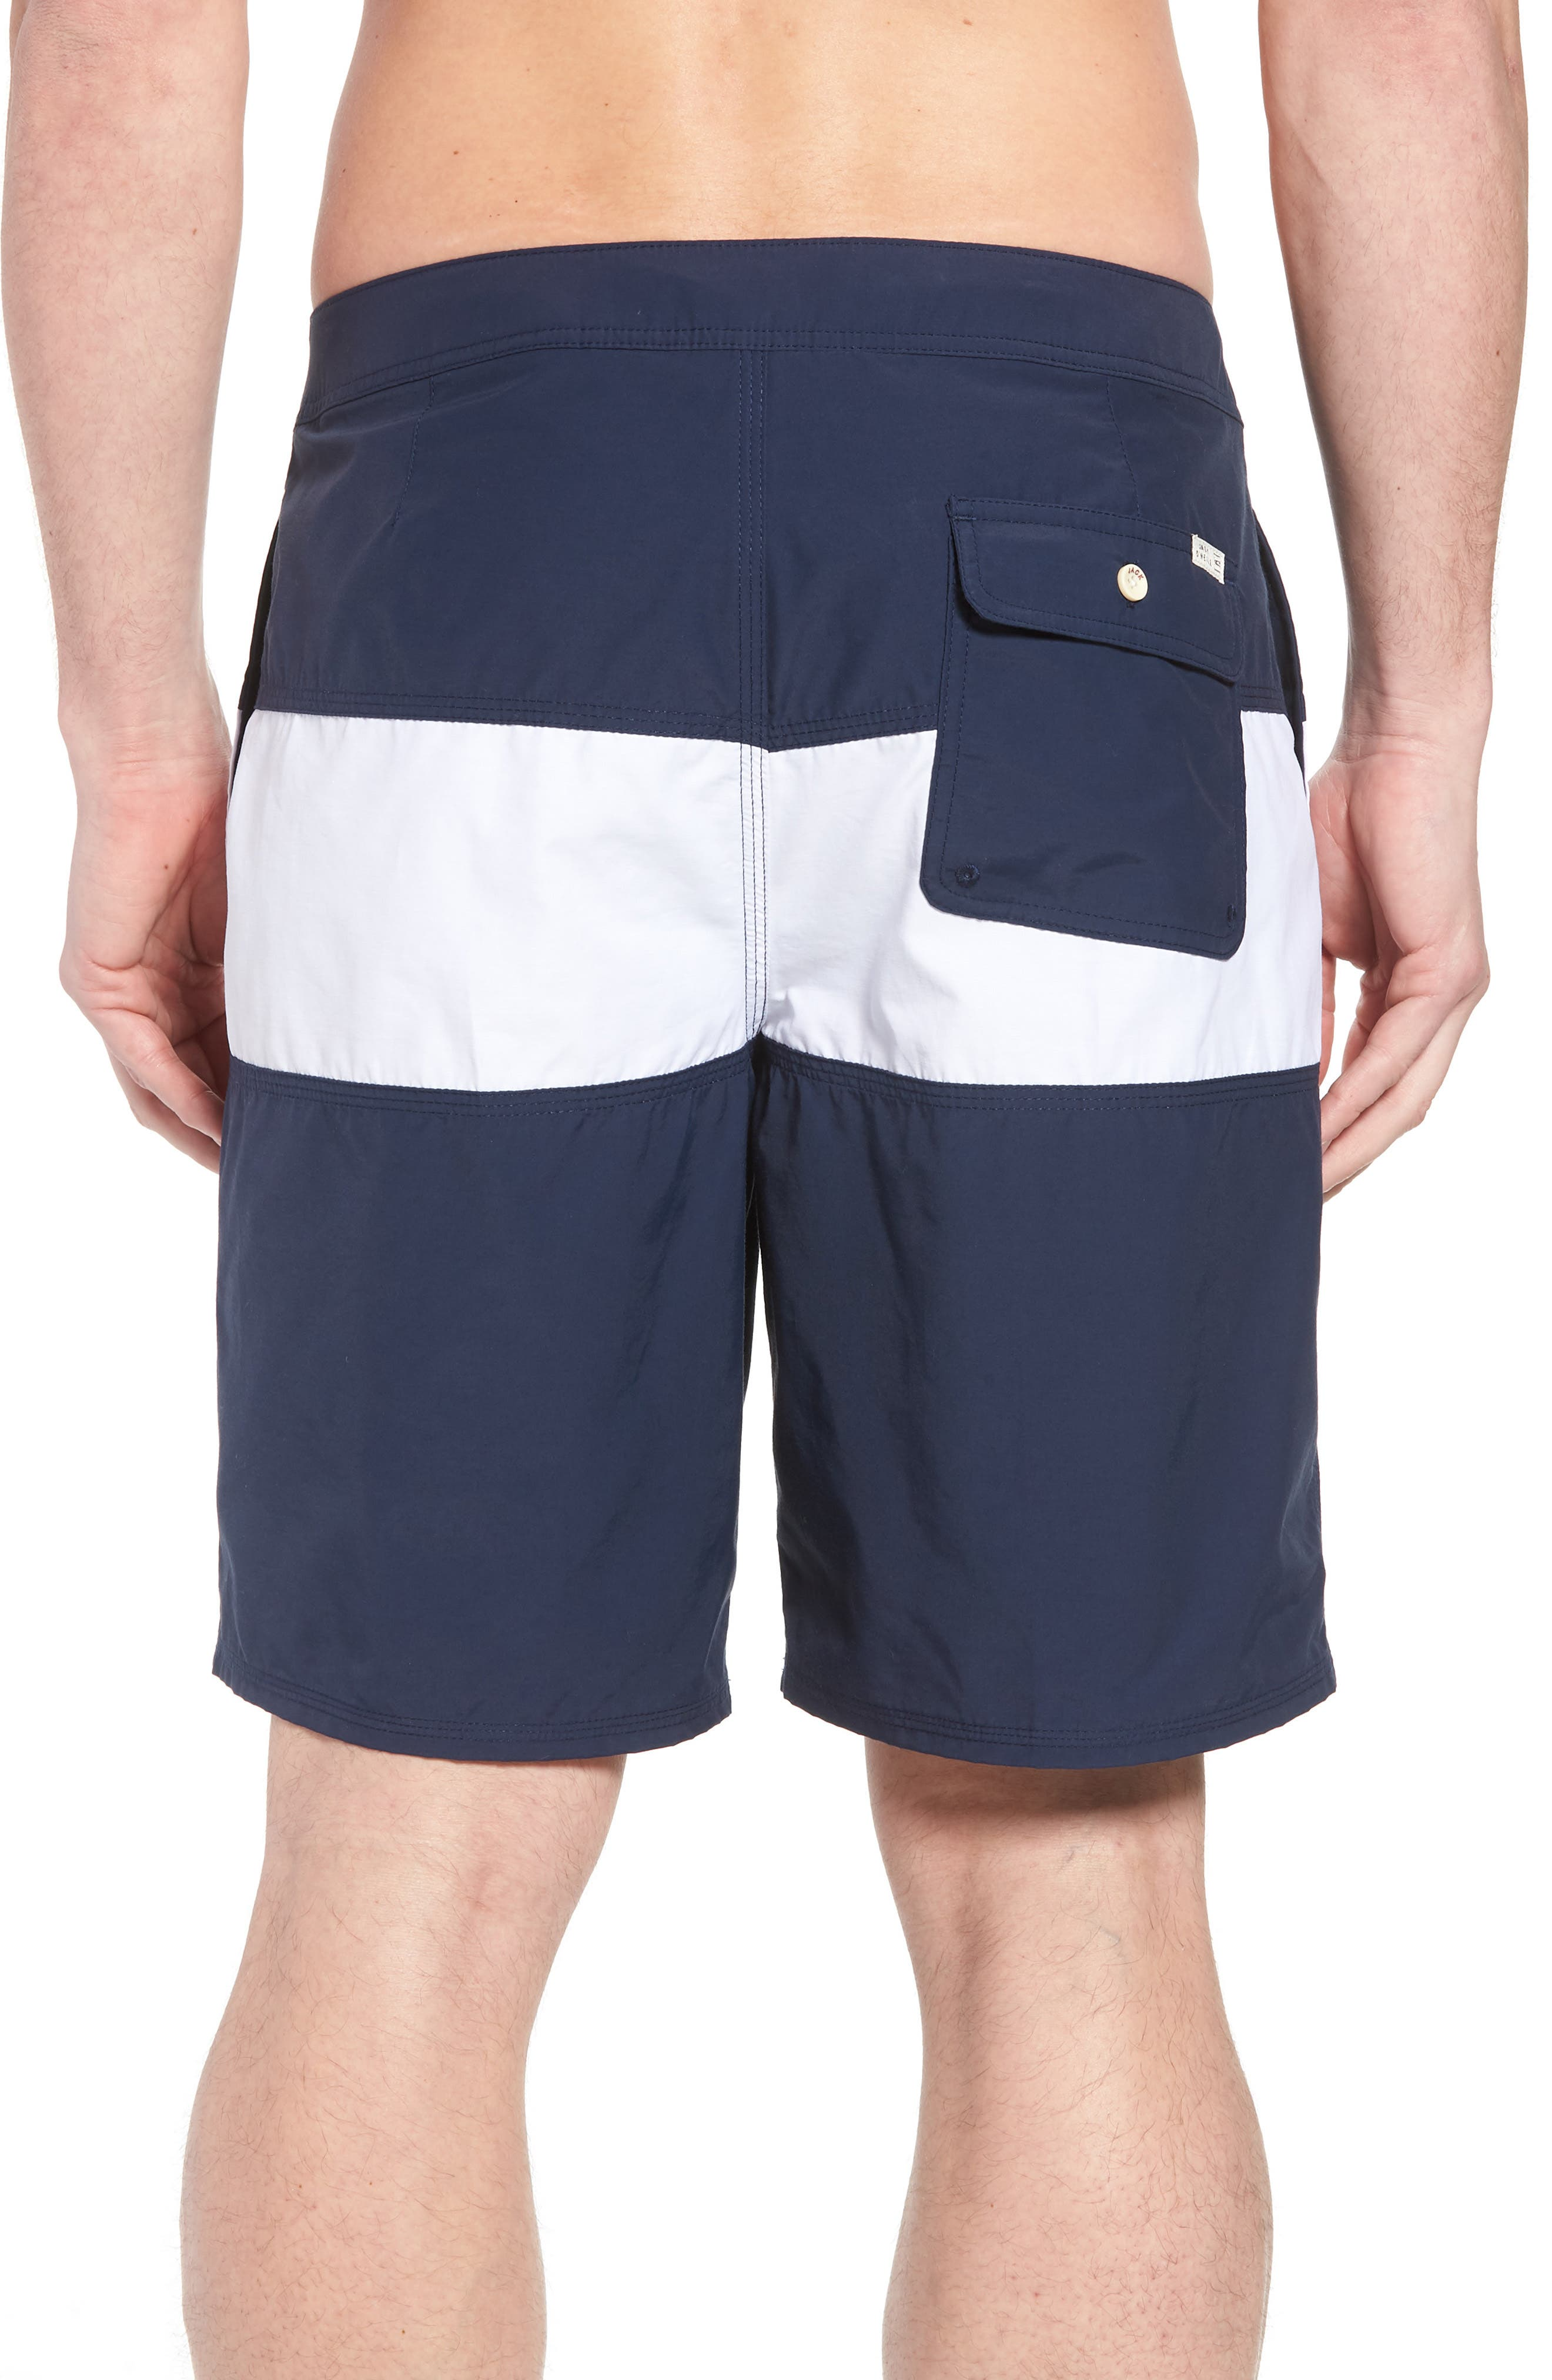 Heritage Board Shorts,                             Alternate thumbnail 2, color,                             NAVY